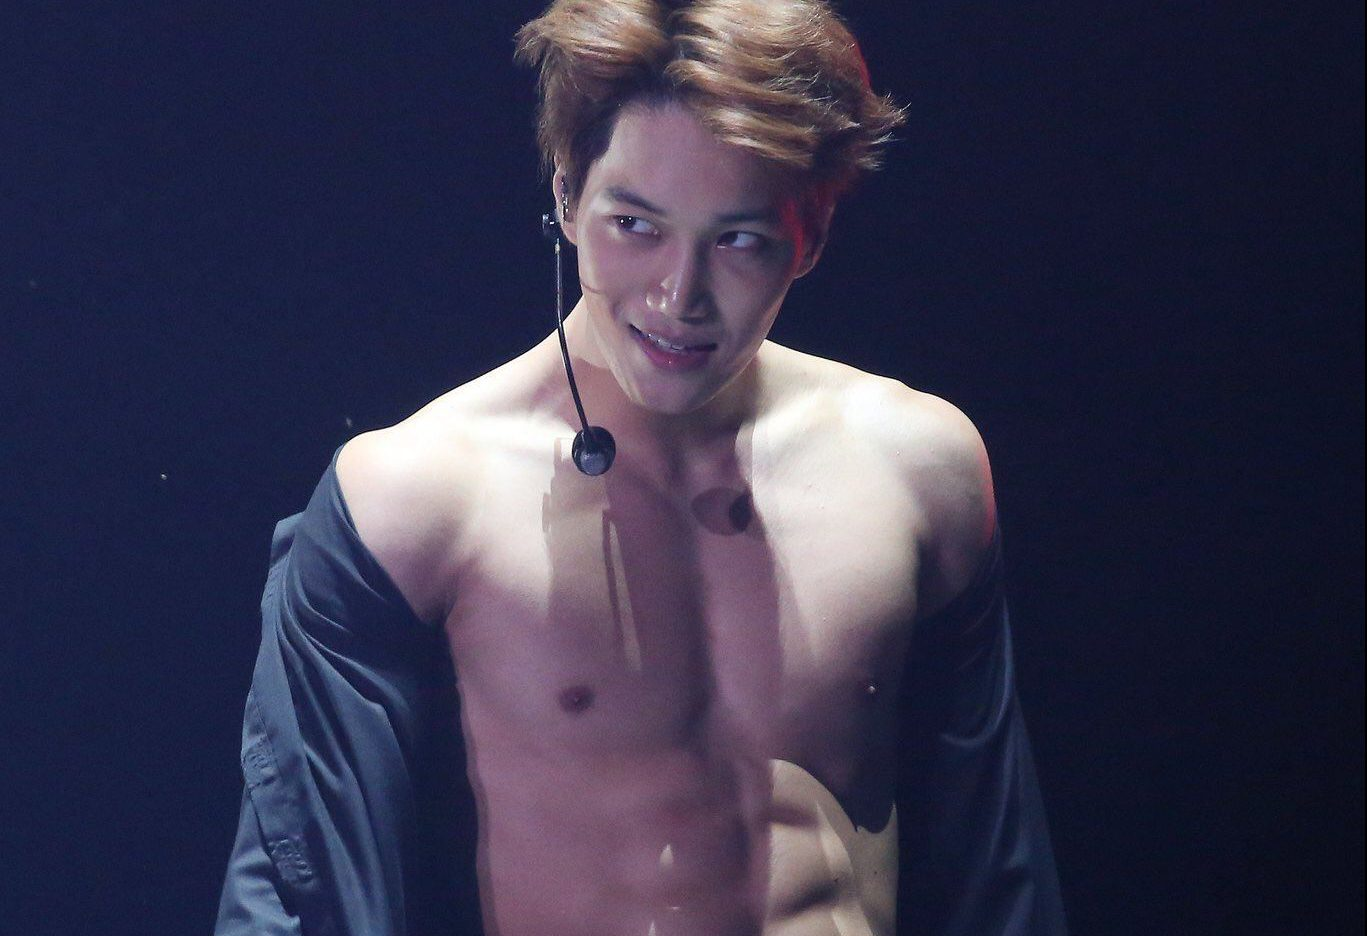 Baekhyun and Kai Drove Fans Wild When They Flashed Their Sexy 8 Pack Abs